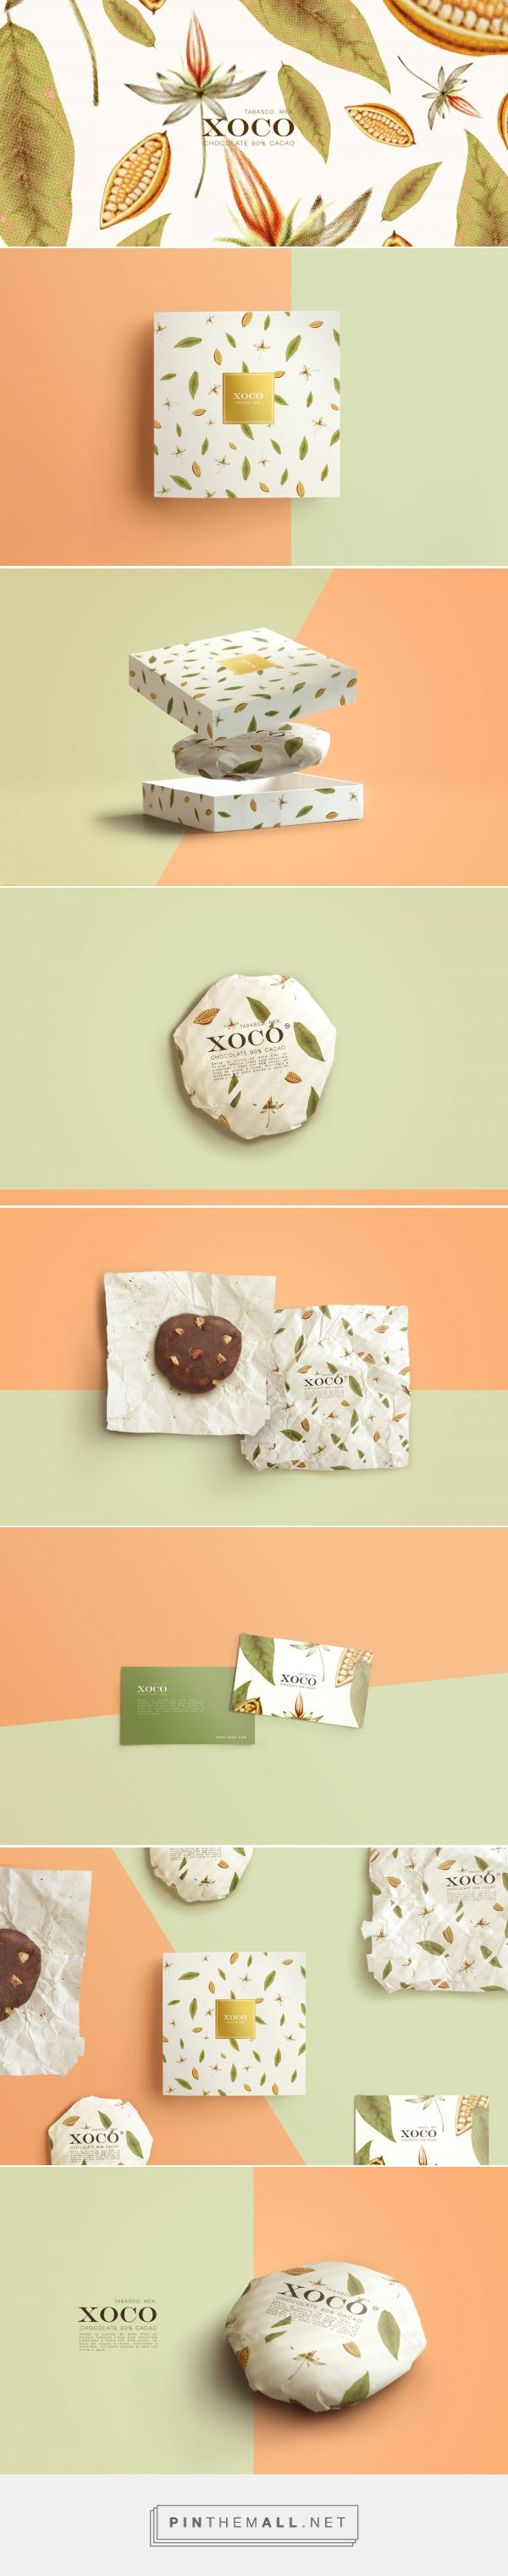 XOCO - mexican craft chocolate on Behance - created via https://pinthemall.net